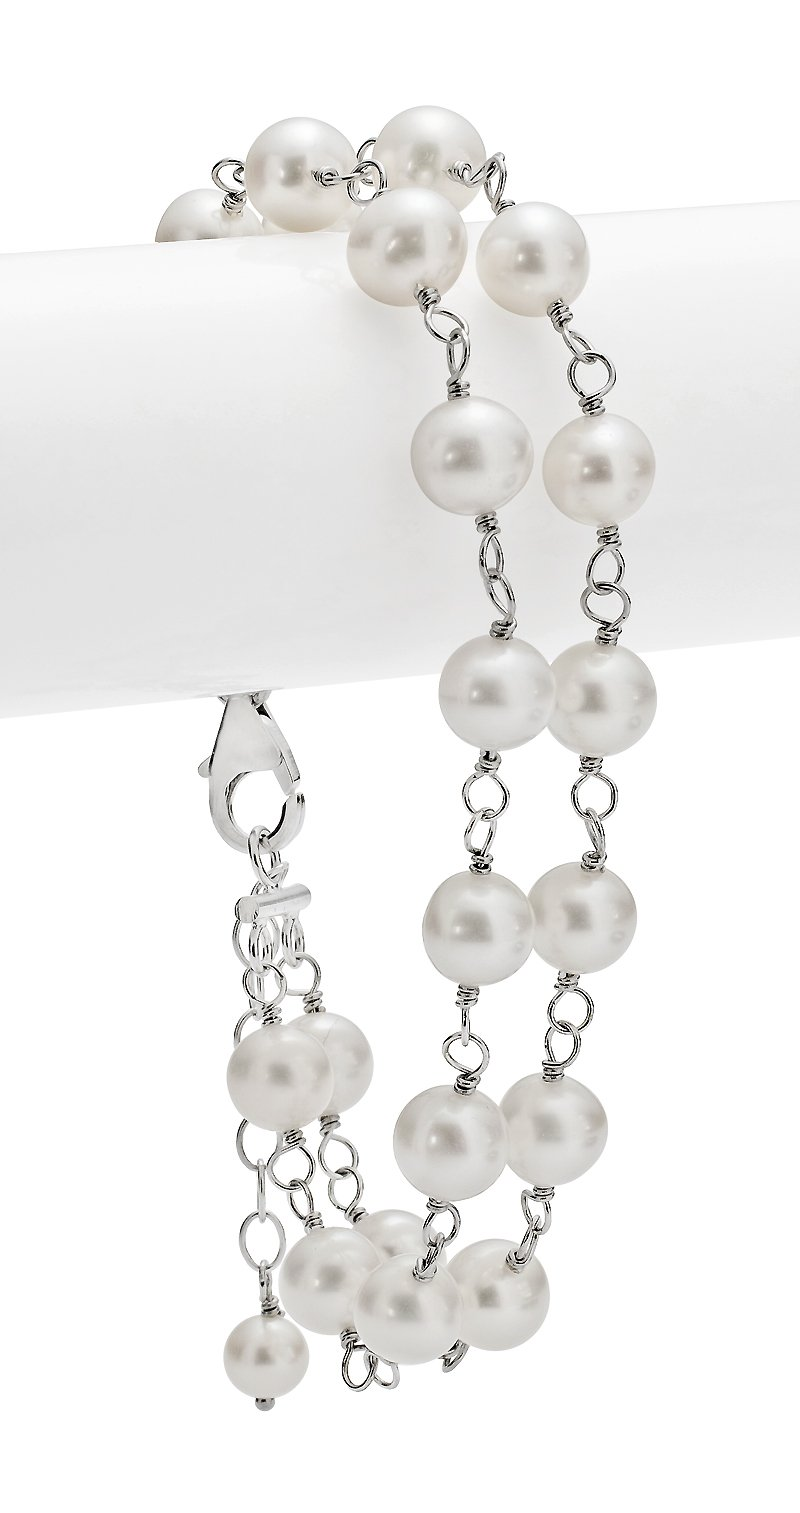 6.5-7mm Double Strand Sterling Silver White Freshwater Cultured Pearl Tin Cup Bracelet AA+ Quality, 7''-8''